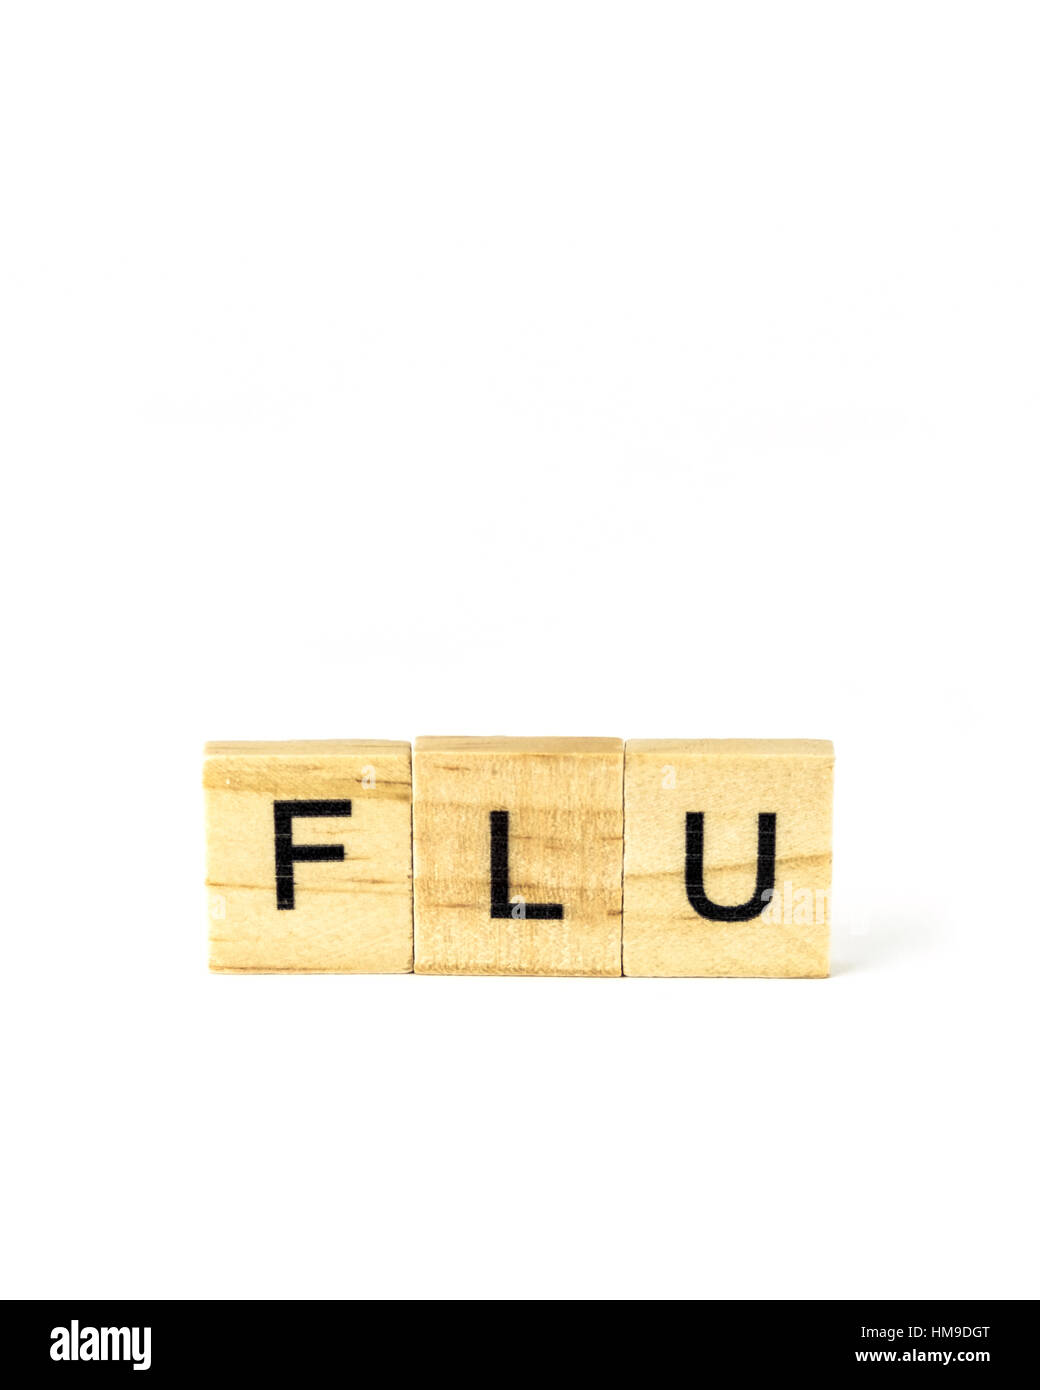 Block letters spelling 'Flu', a desease and health issue. Cutout. - Stock Image